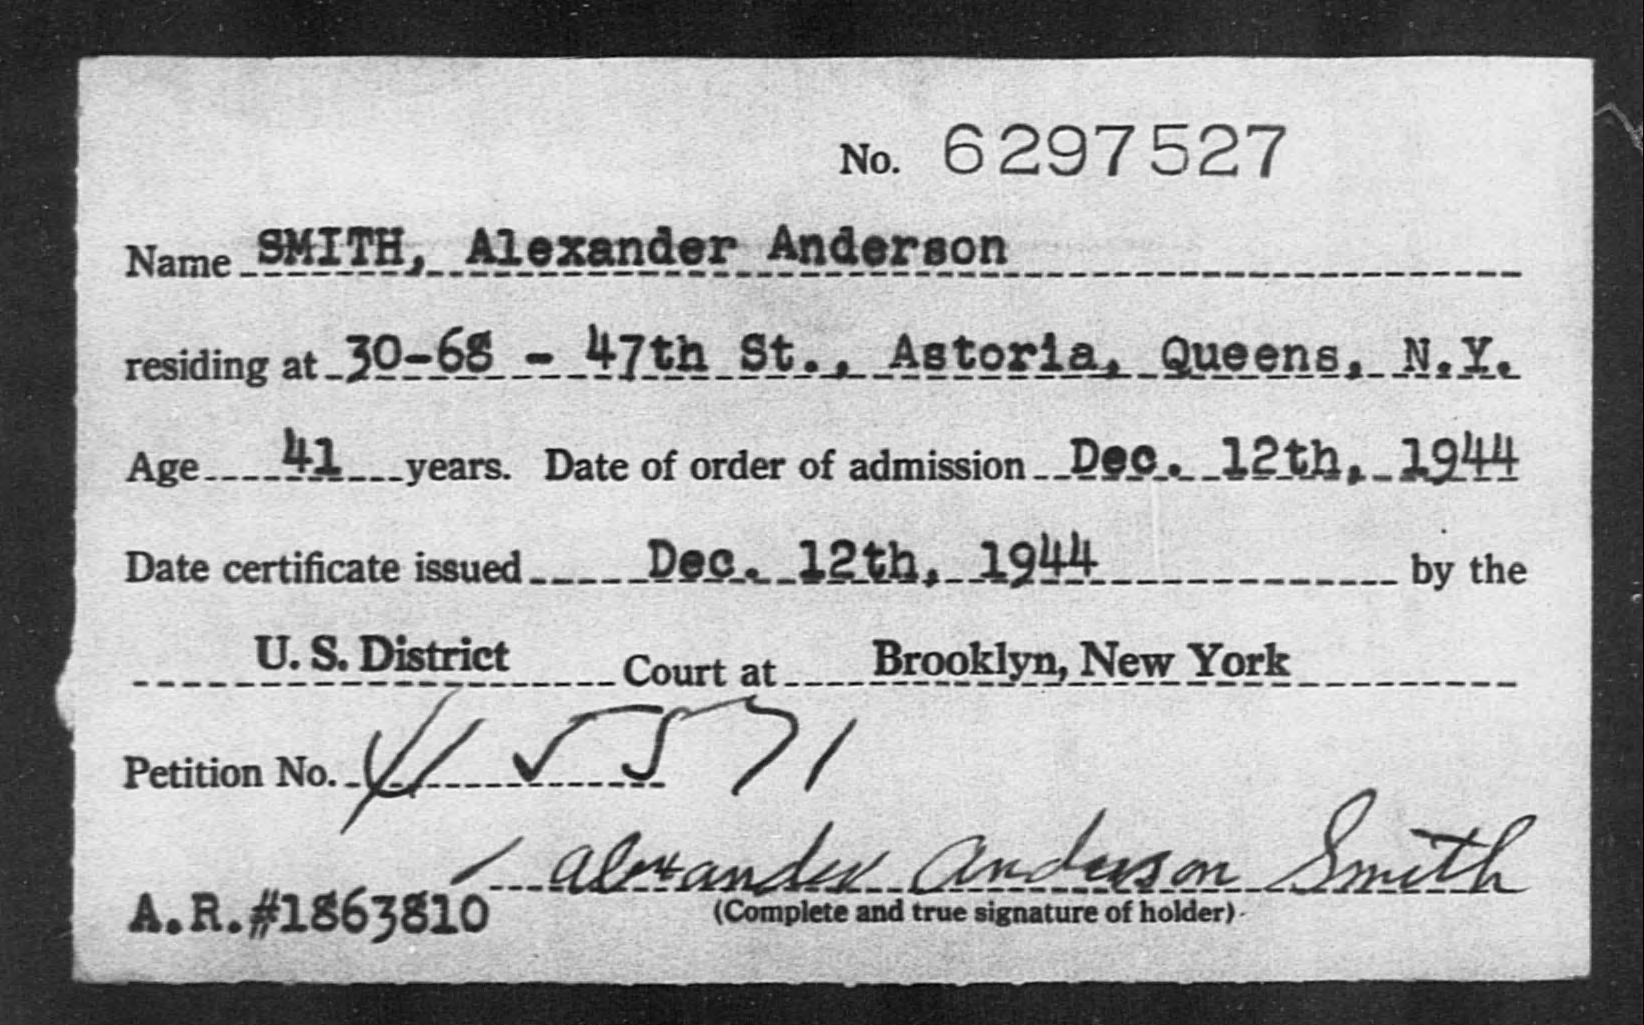 SMITH, Alexander Anderson - Born: [BLANK], Naturalized: 1944